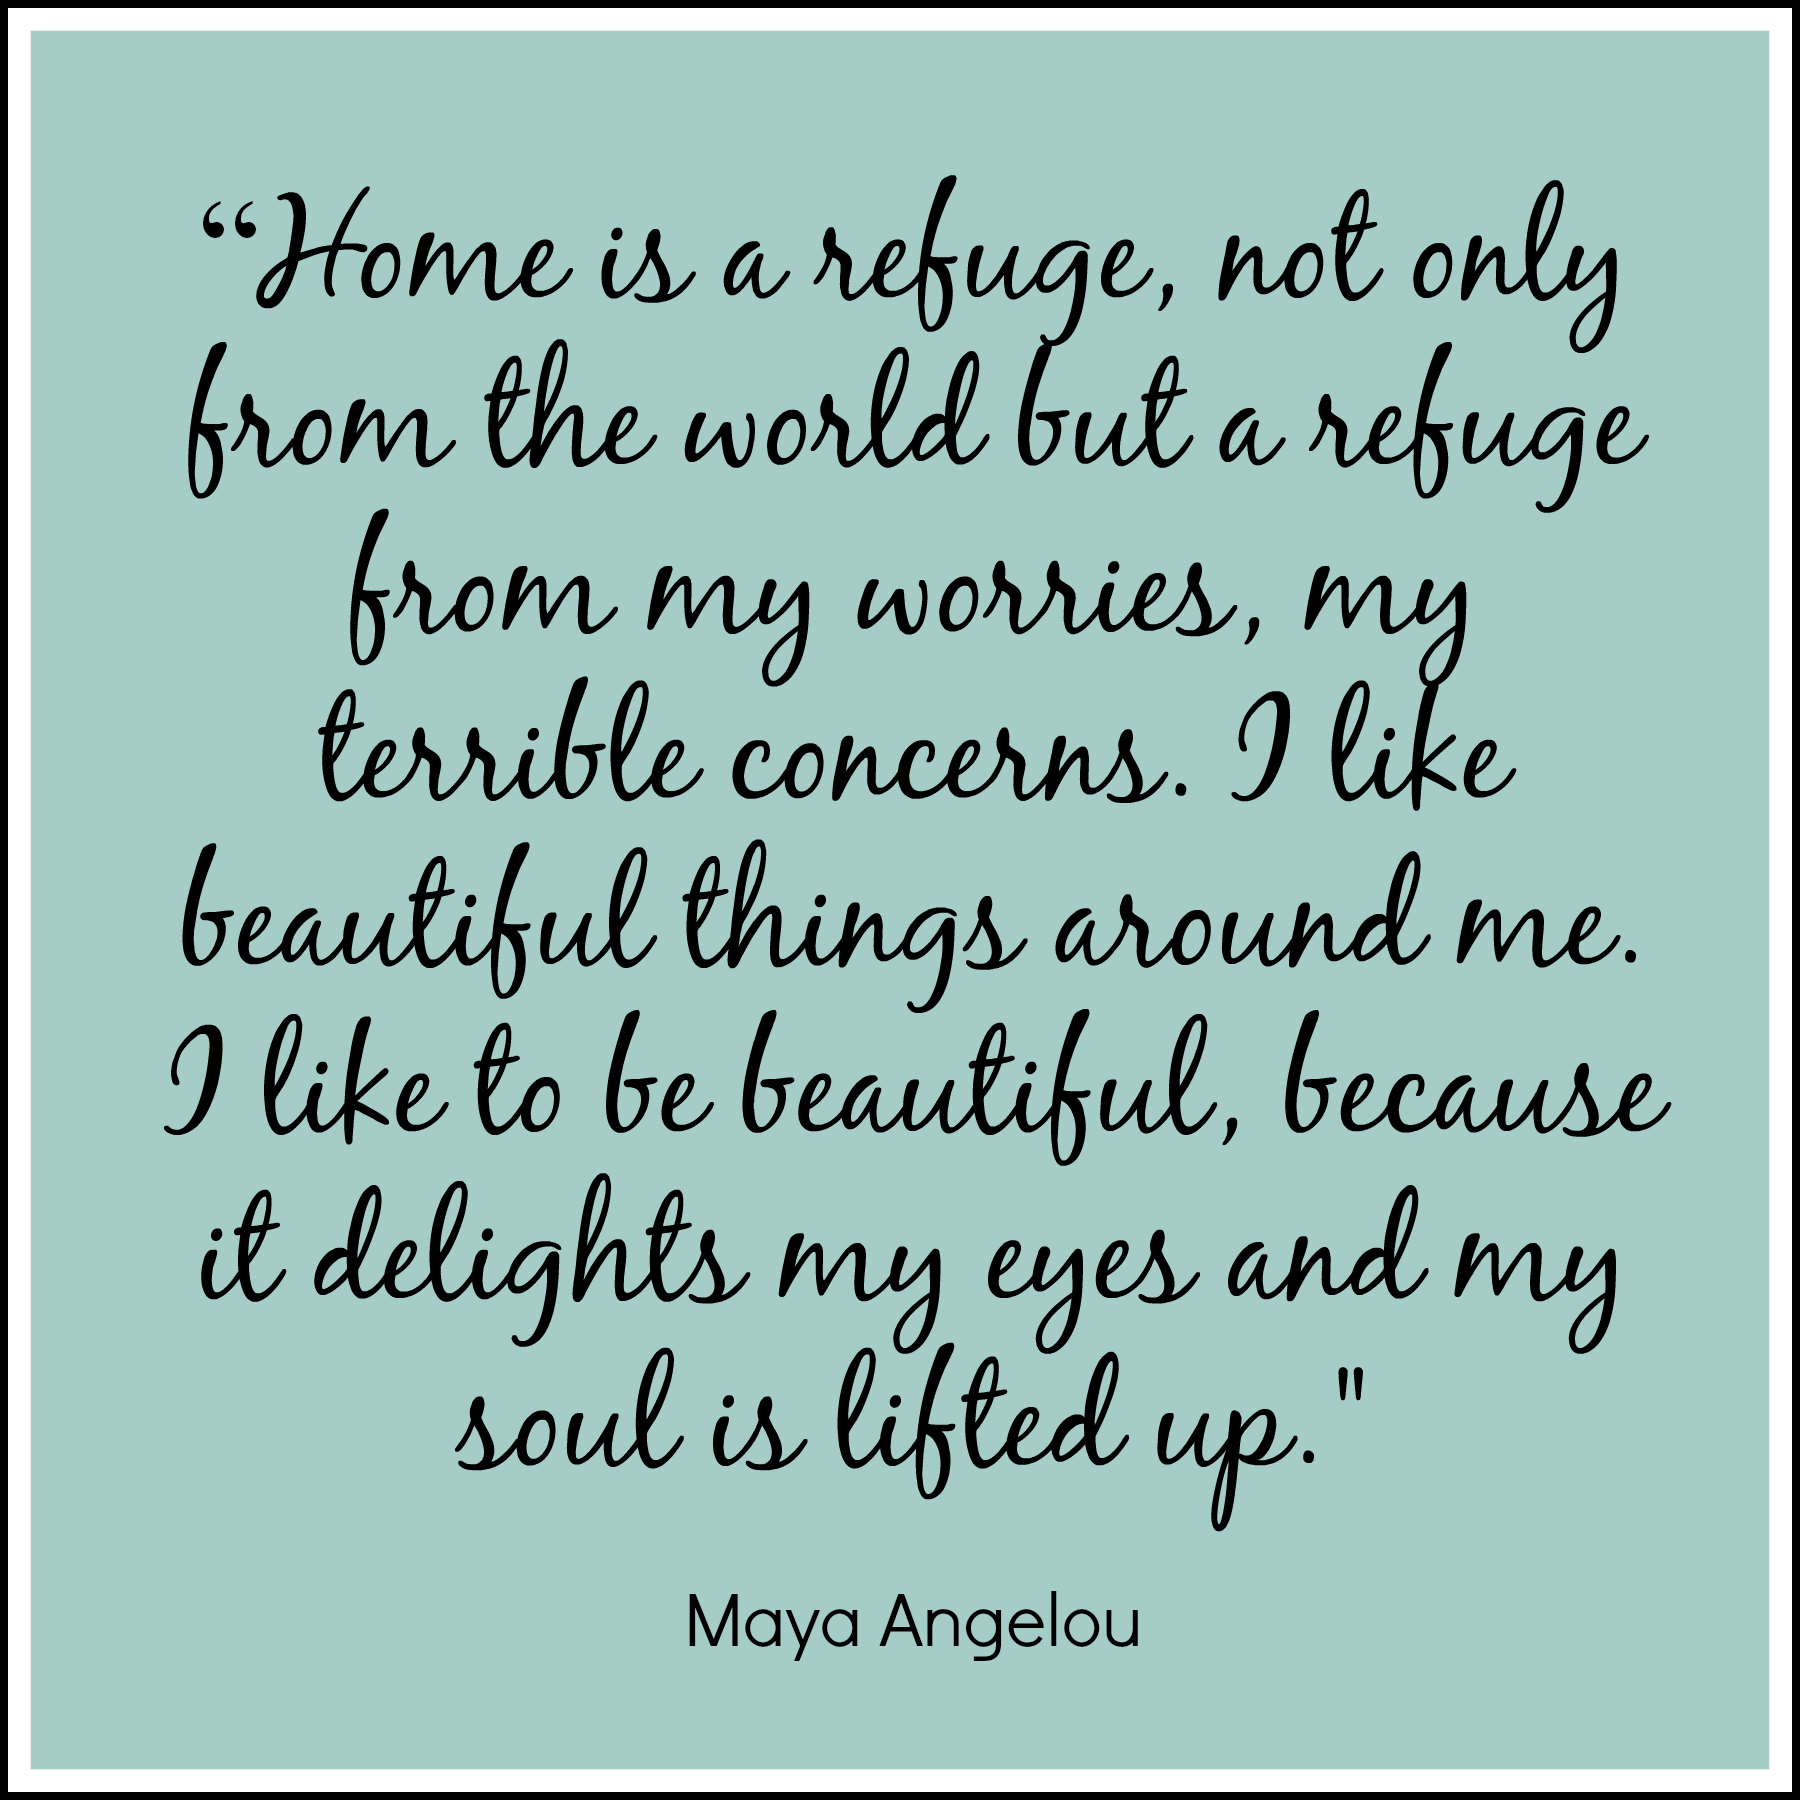 Maya Angelou Quotes And Sayings: Sympathy Quotes Maya Angelou. QuotesGram